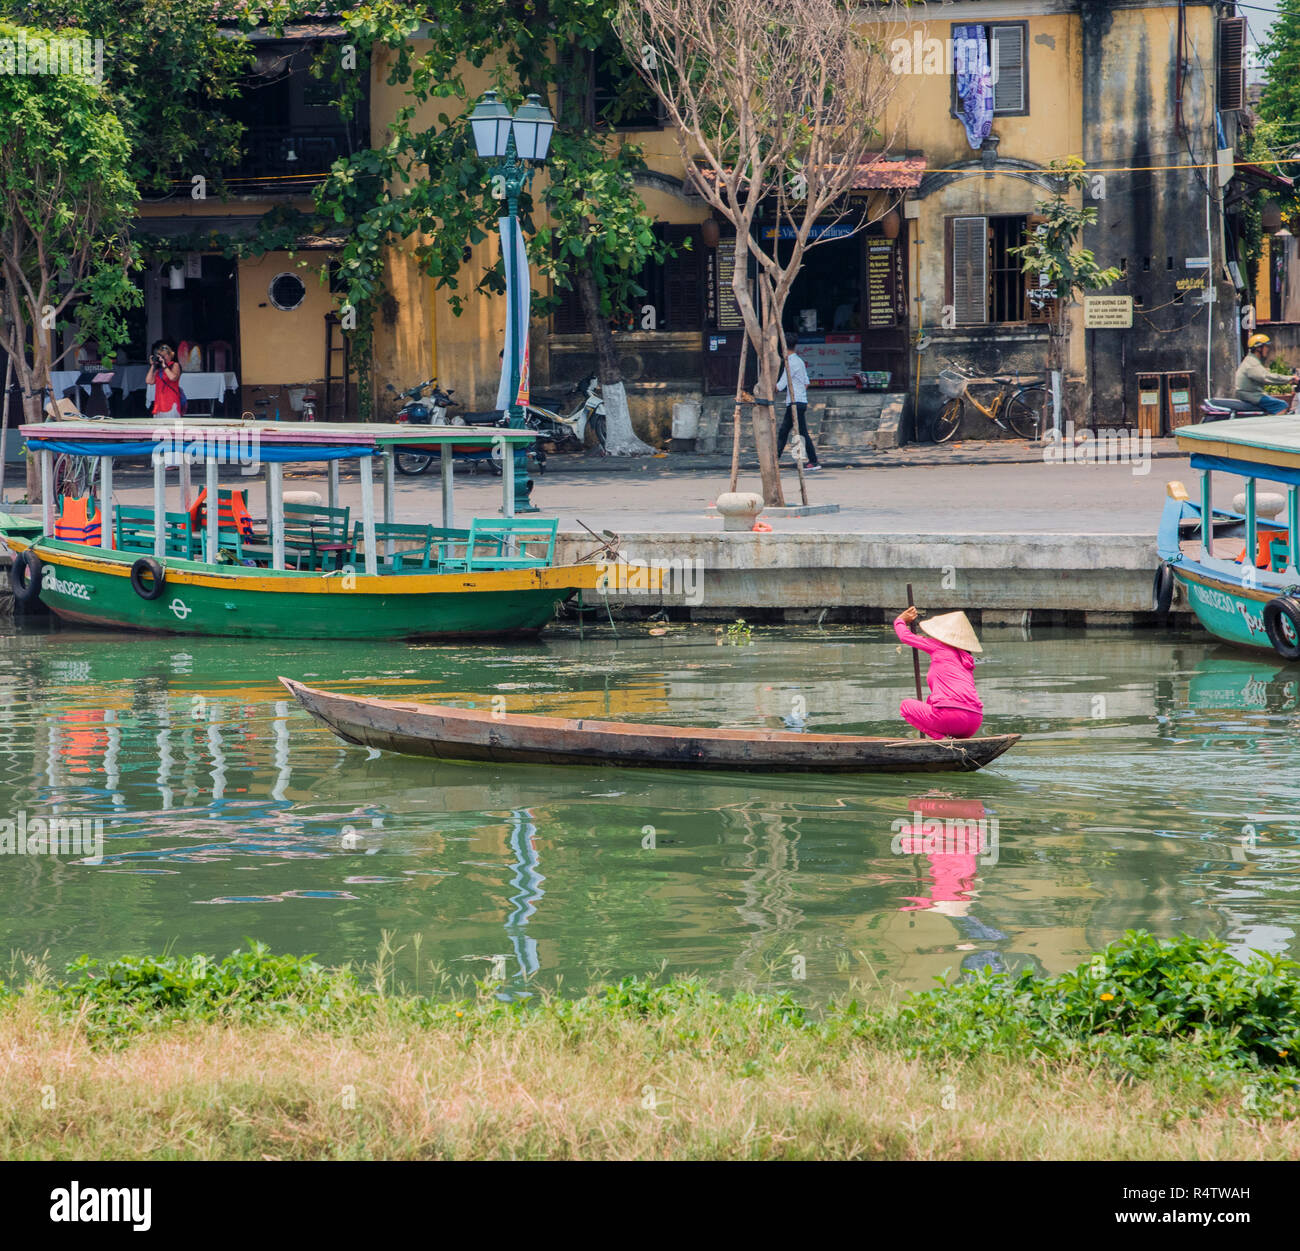 Hoi An a traditional Vietnamese lady rowing a boat across the river Bon in Hoi An Town Vietnam. - Stock Image